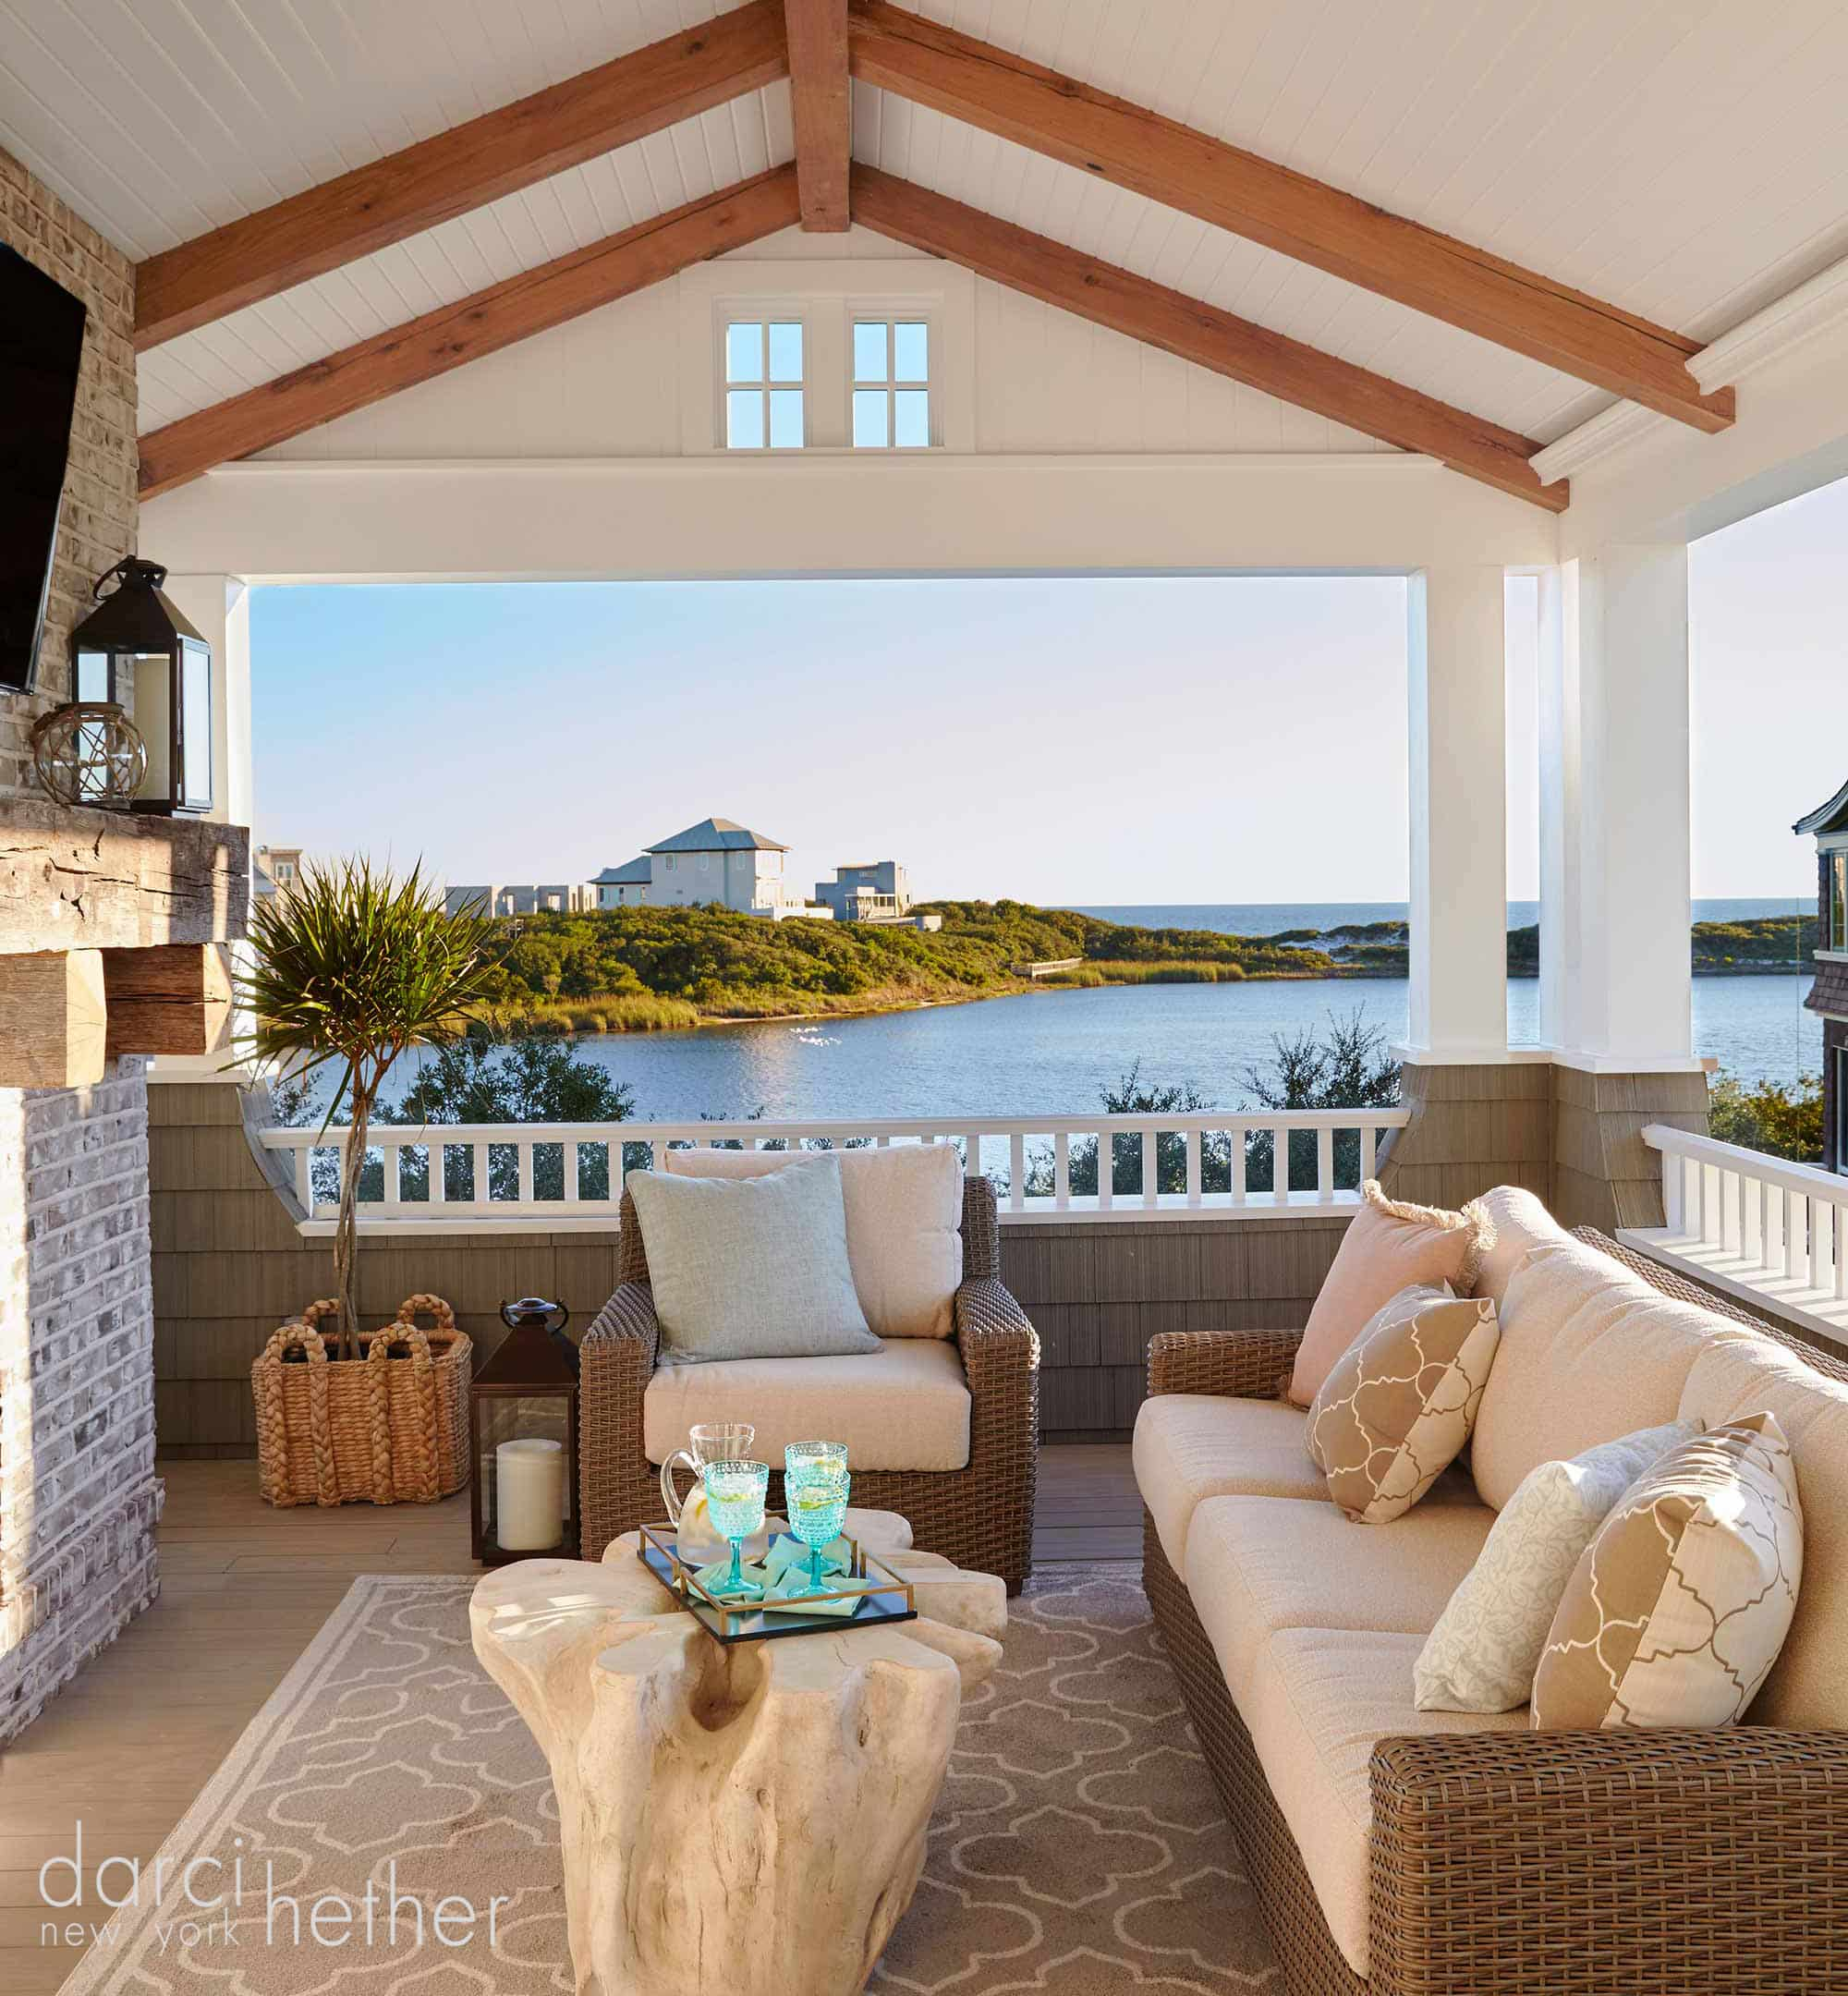 outdoor living room with tv above fireplace of new beach house build in watersound florida 30A. design by darci hether new york.